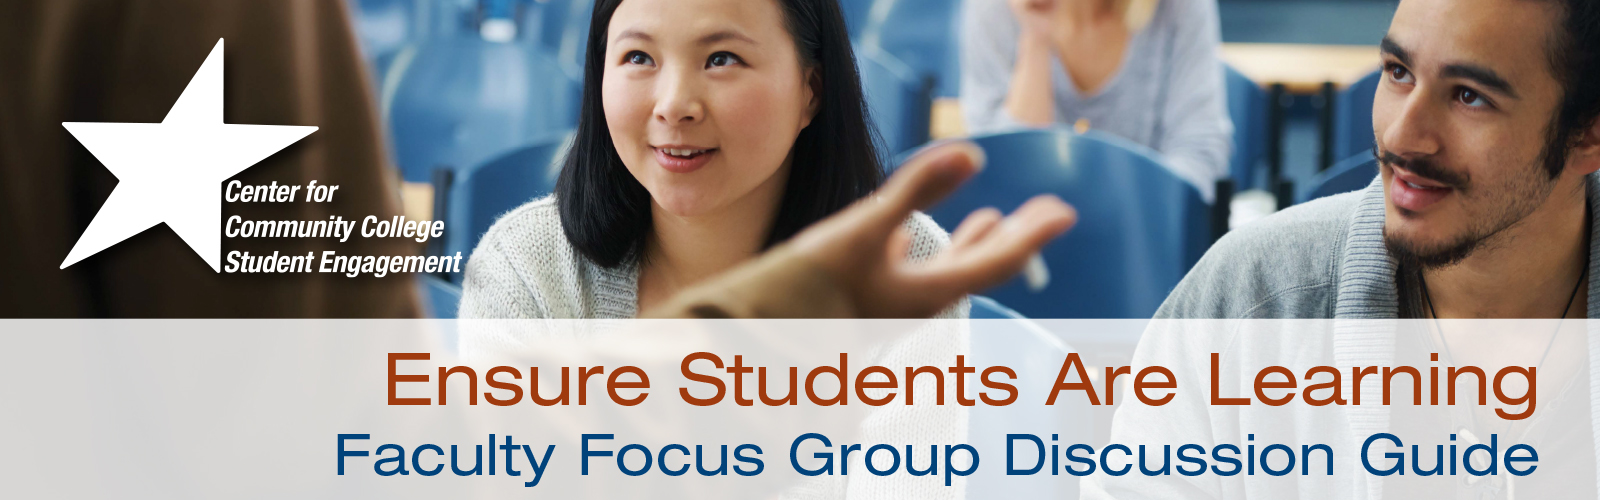 Graphical Banner for Faculty Focus Group